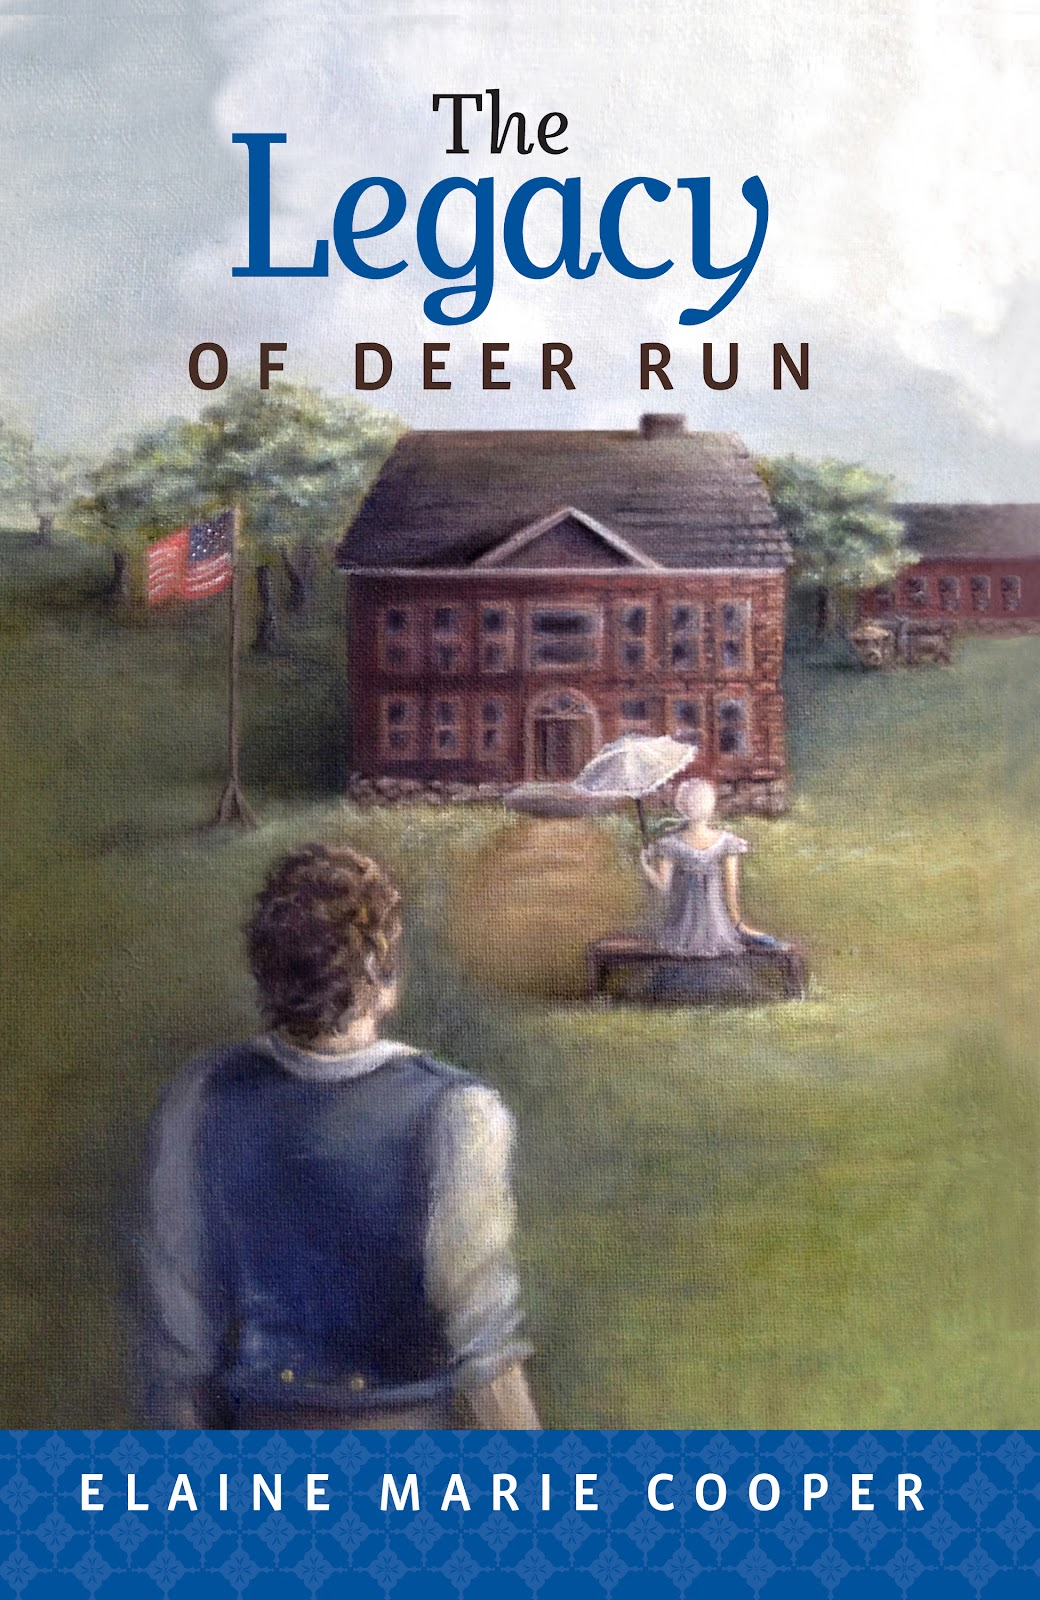 road to deer run.jpg